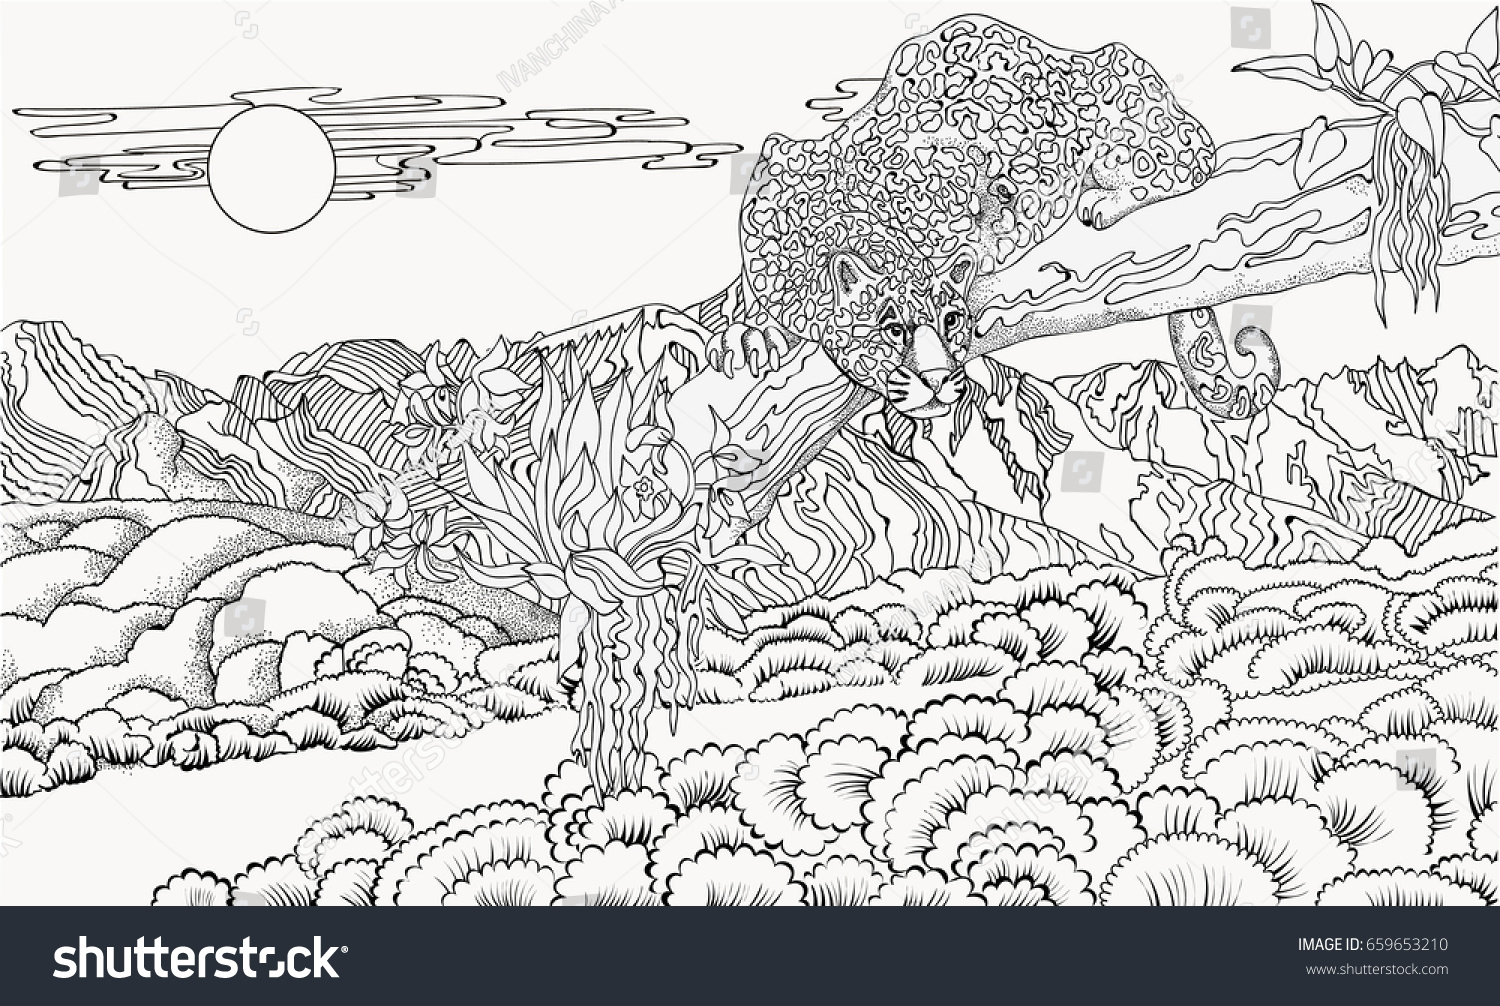 89 nature coloring pages mountain landscape click